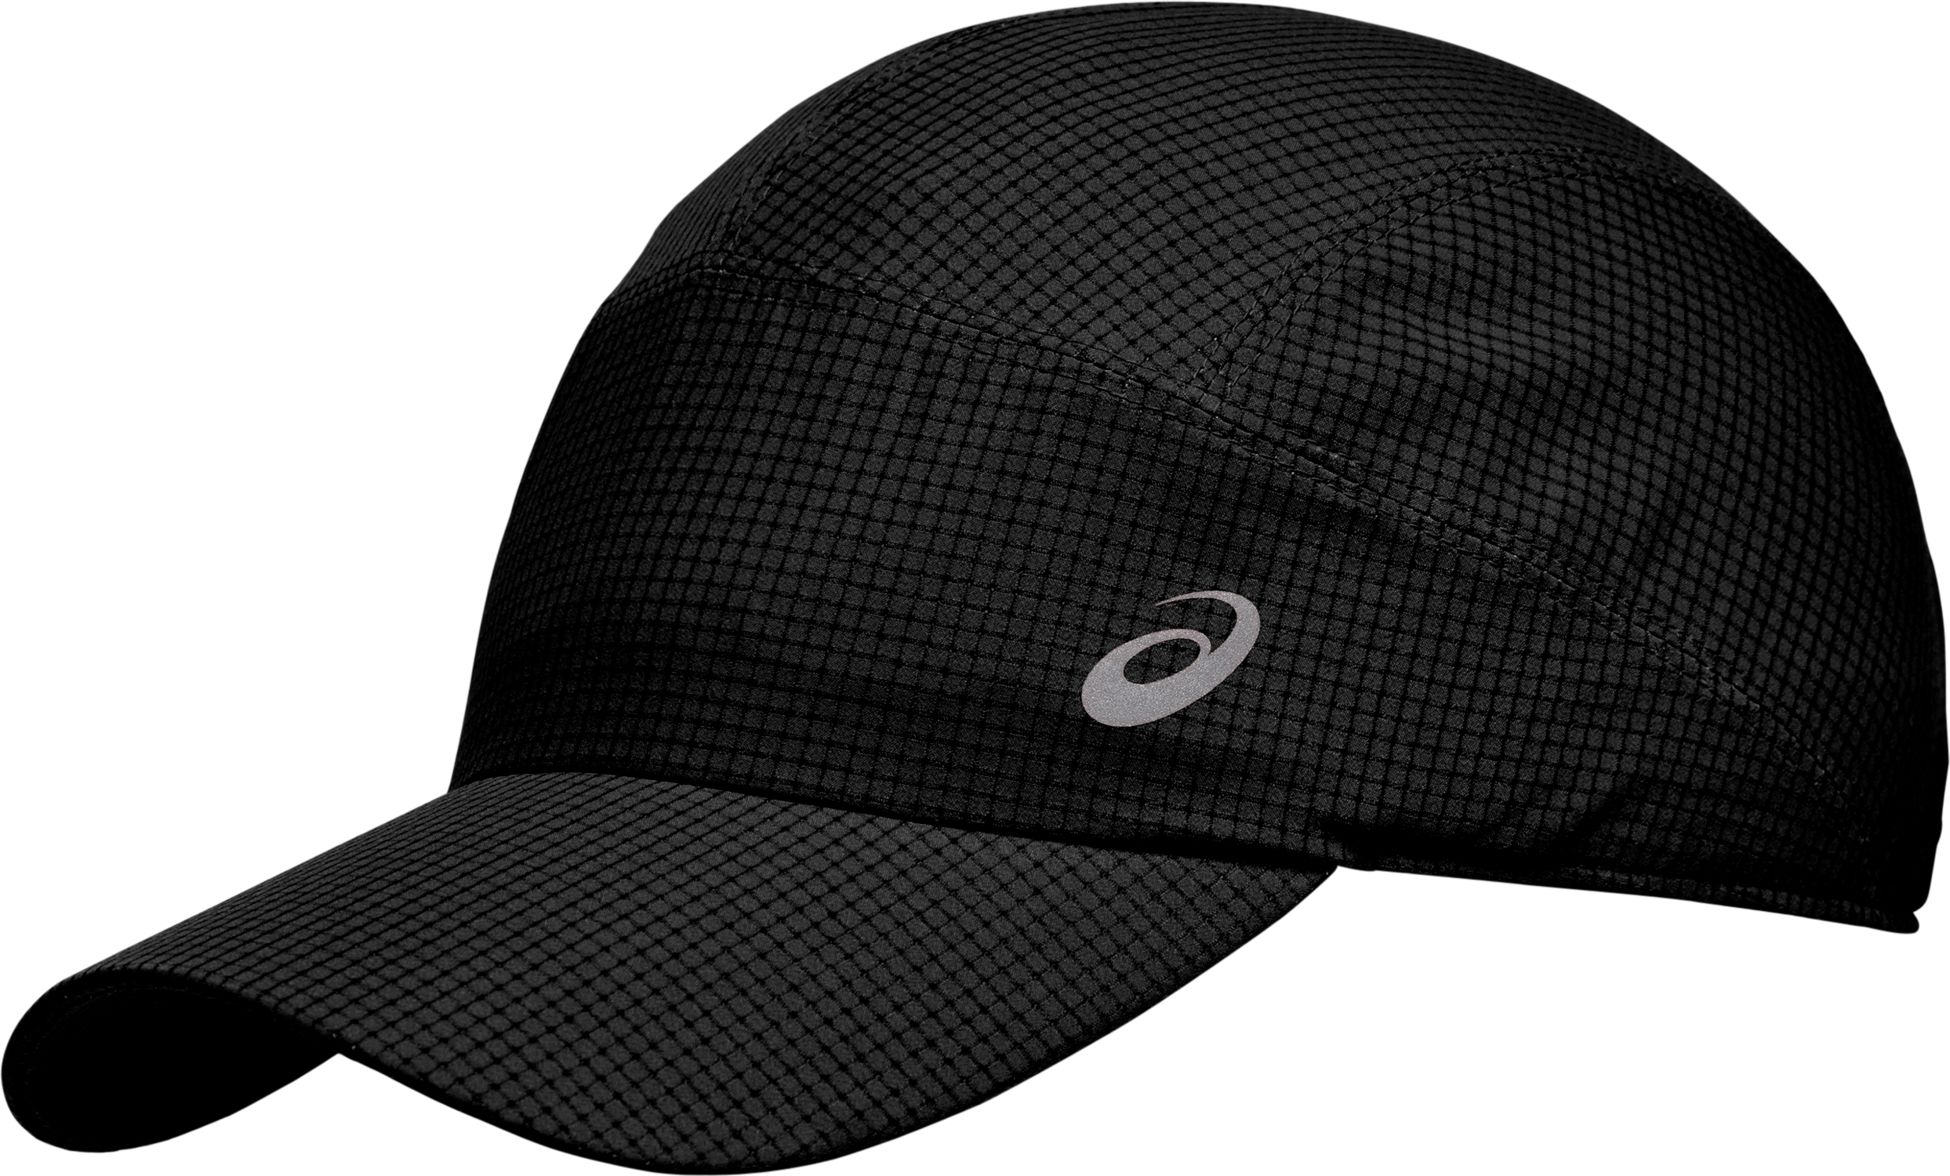 350617101101, LIGHTWEIGHT RUNNING CAP, ASICS, Detail